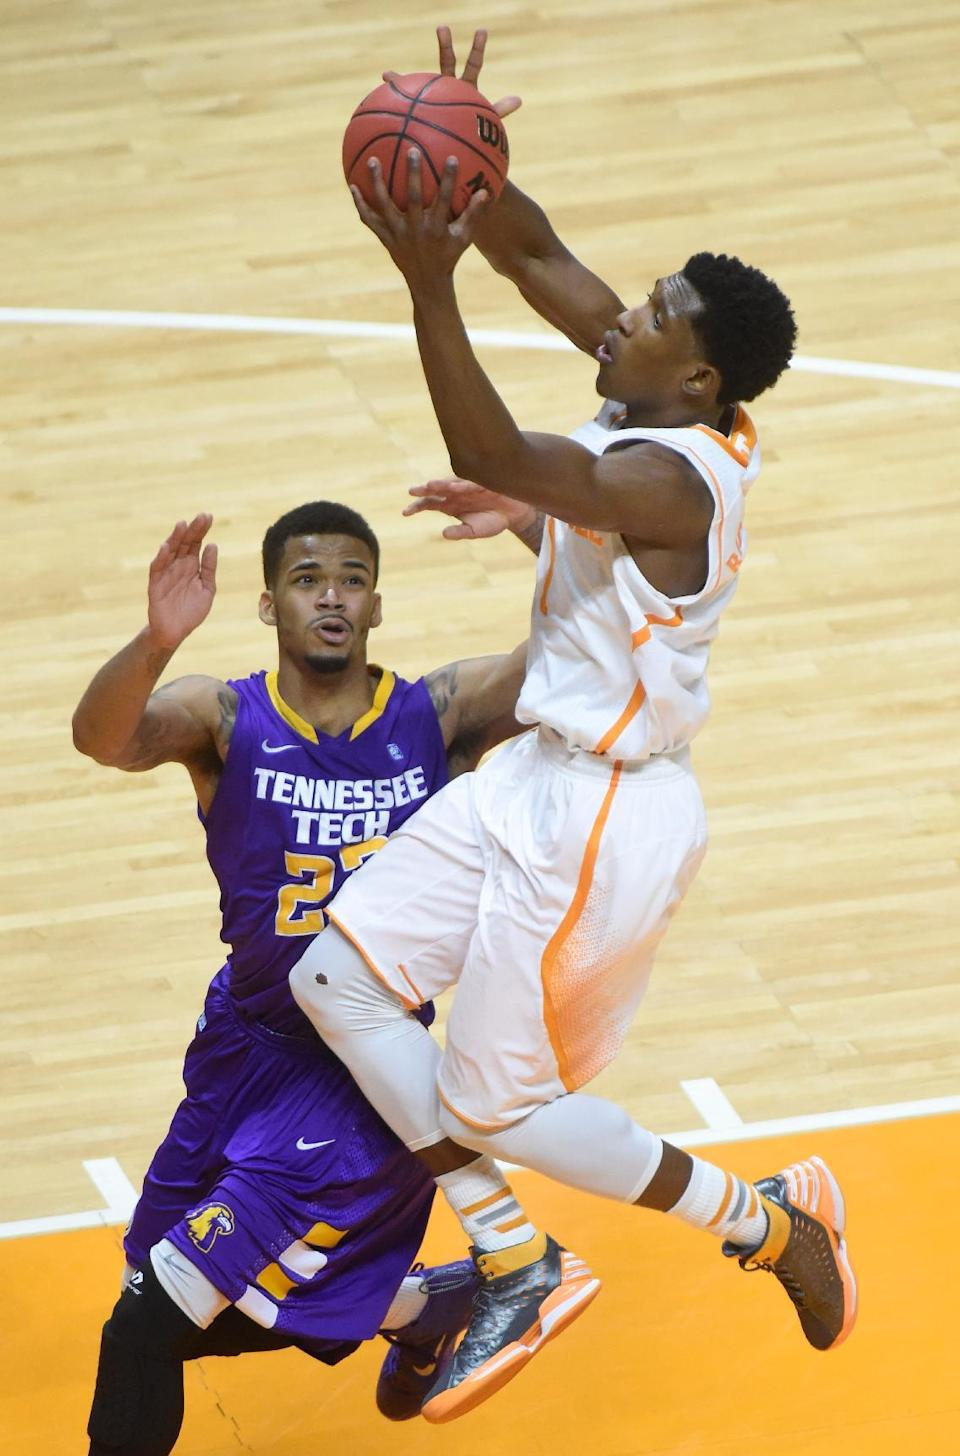 Tennessee guard Josh Richardson soars for a layup against Tennessee Tech guard Ty Allen during the second half of an NCAA college basketball game in Knoxville, Tenn. on Friday, Dec. 19, 2014. (AP Photo/Knoxville News Sentinel, Adam Lau)